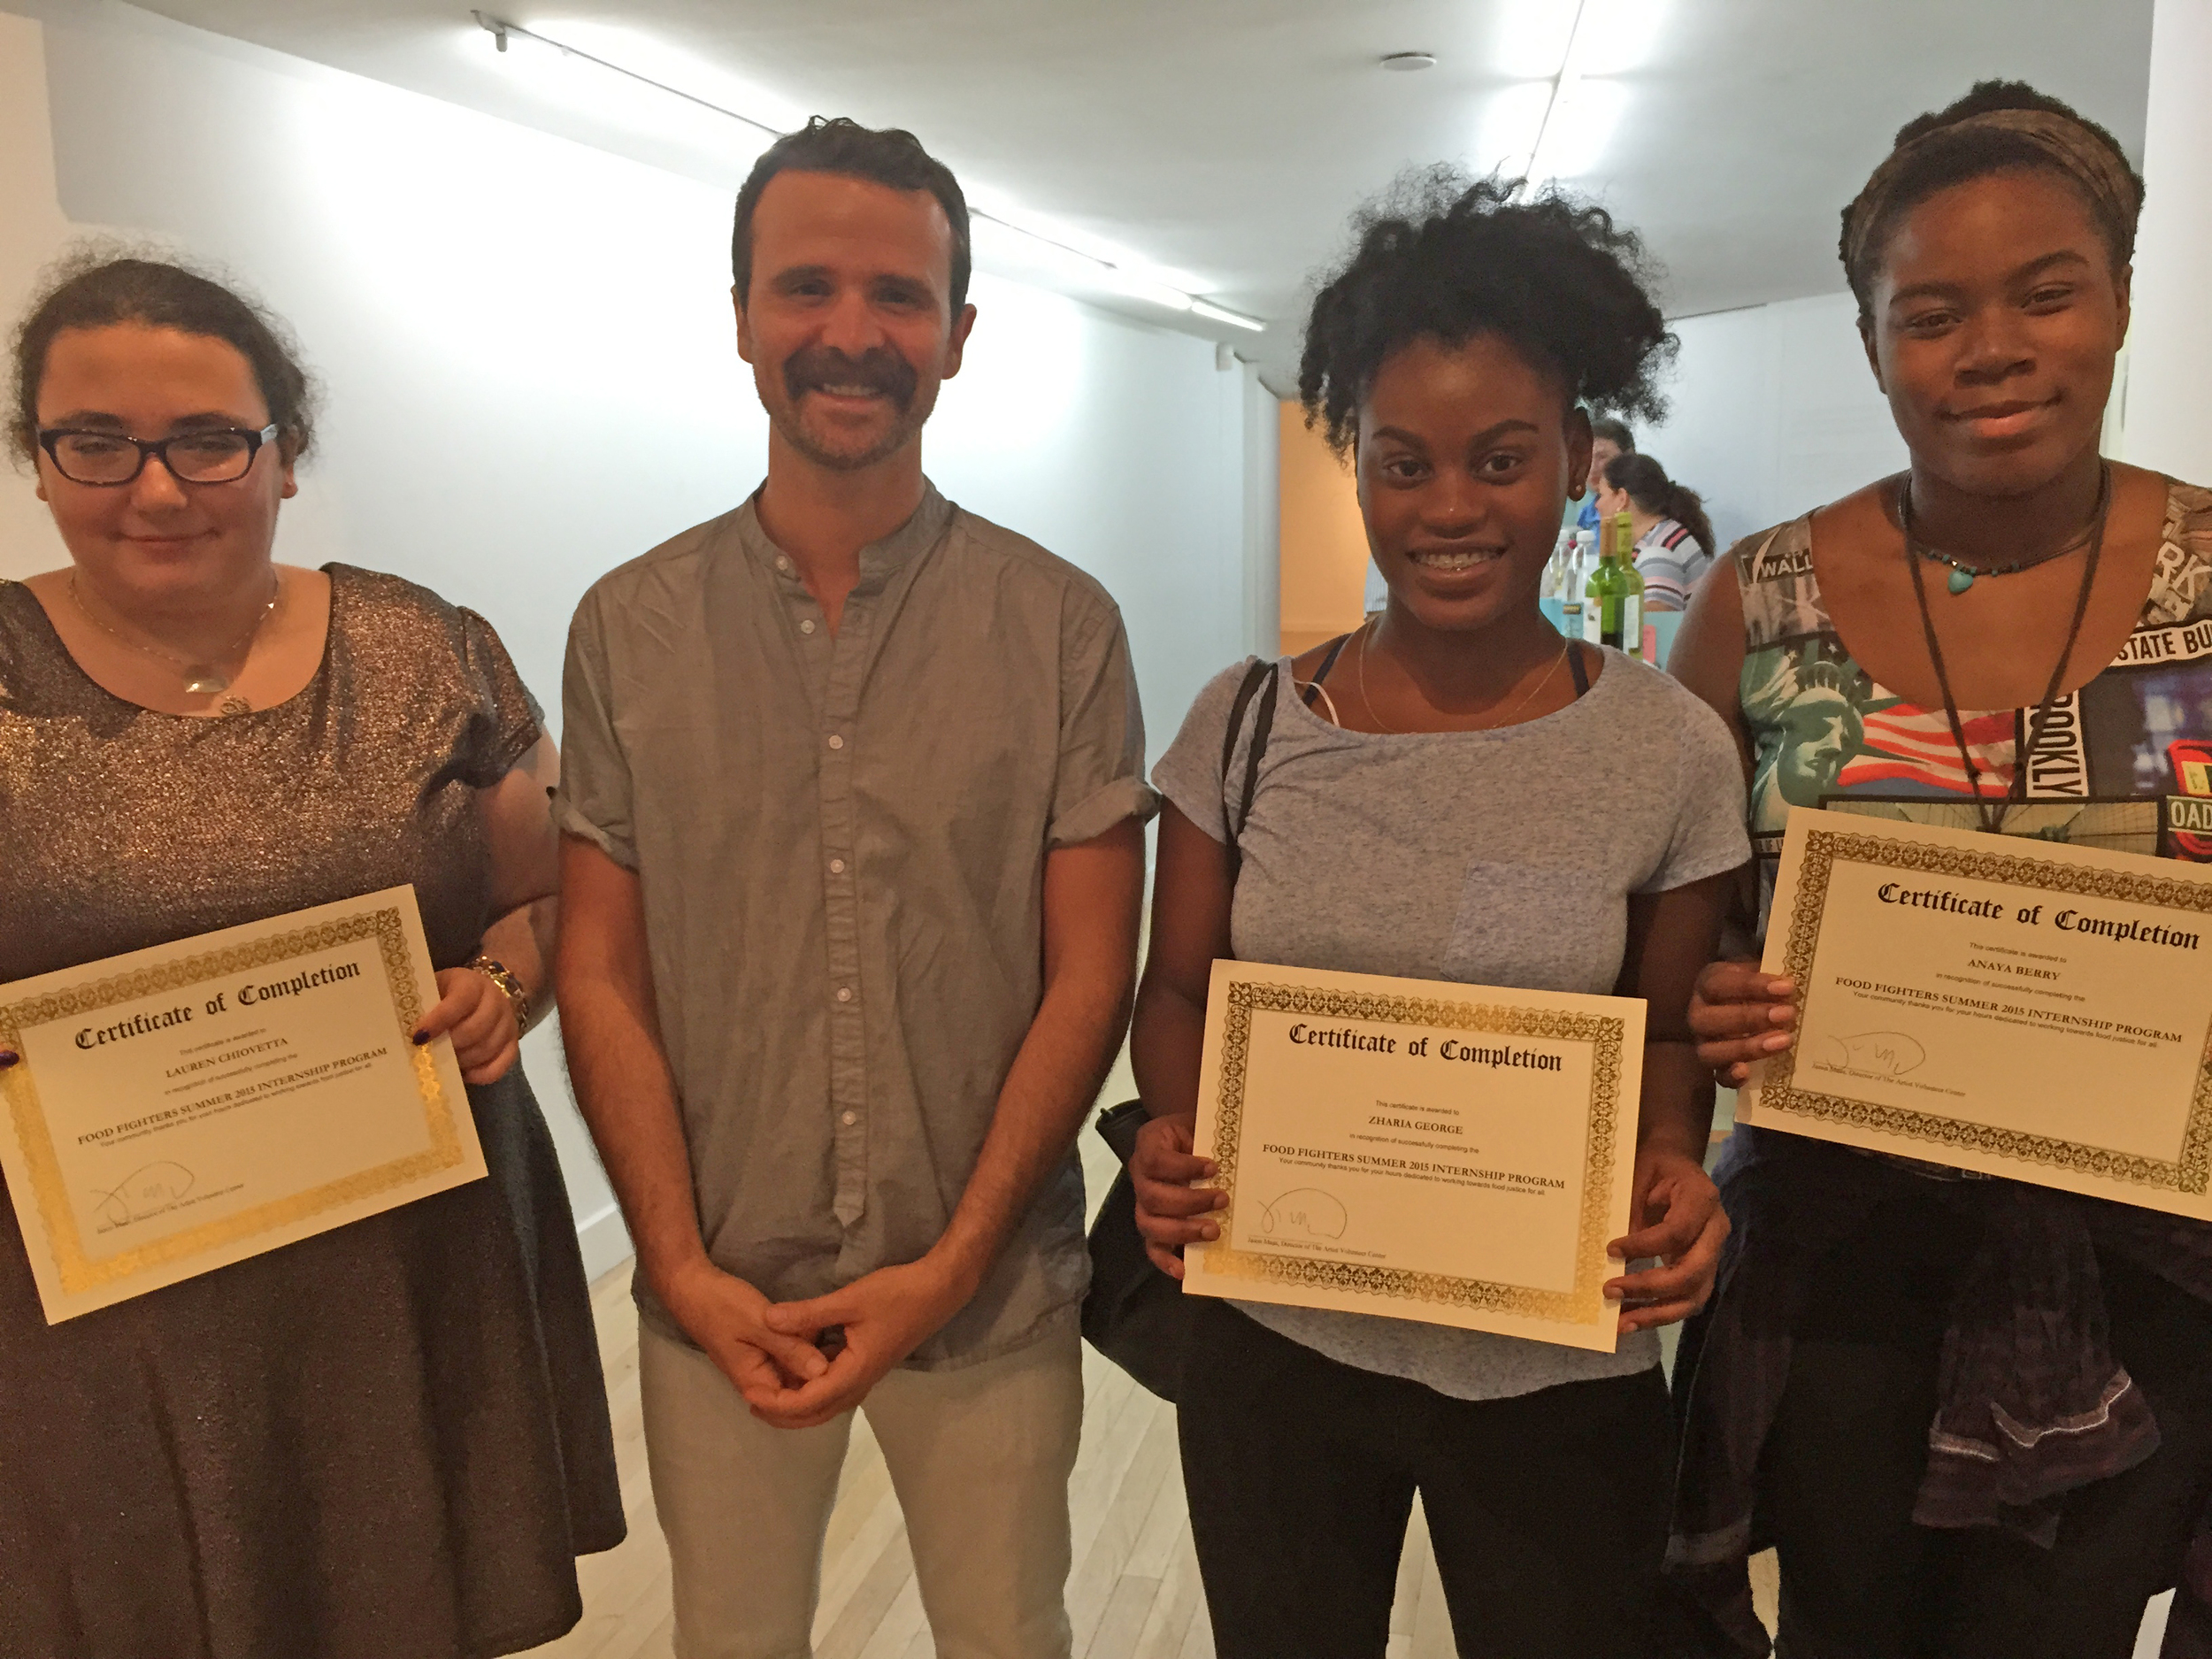 It's official! FOOD FIGHTERS pose with their certificates along with AVC Founder & Director Jason Maas